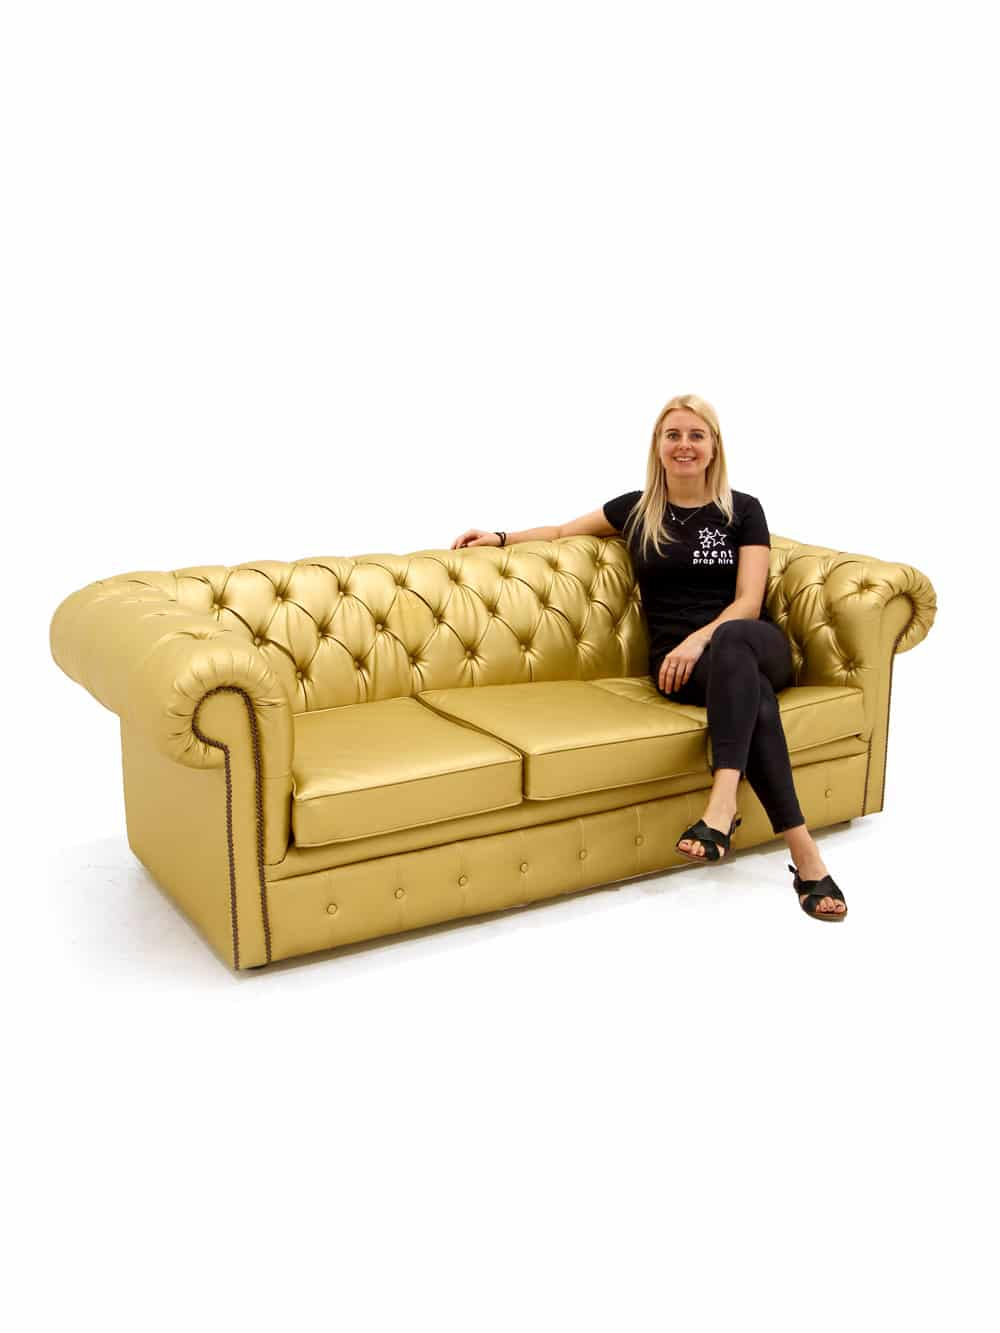 Astonishing Gold Chesterfield Sofa Three Seater Event Prop Hire Gmtry Best Dining Table And Chair Ideas Images Gmtryco